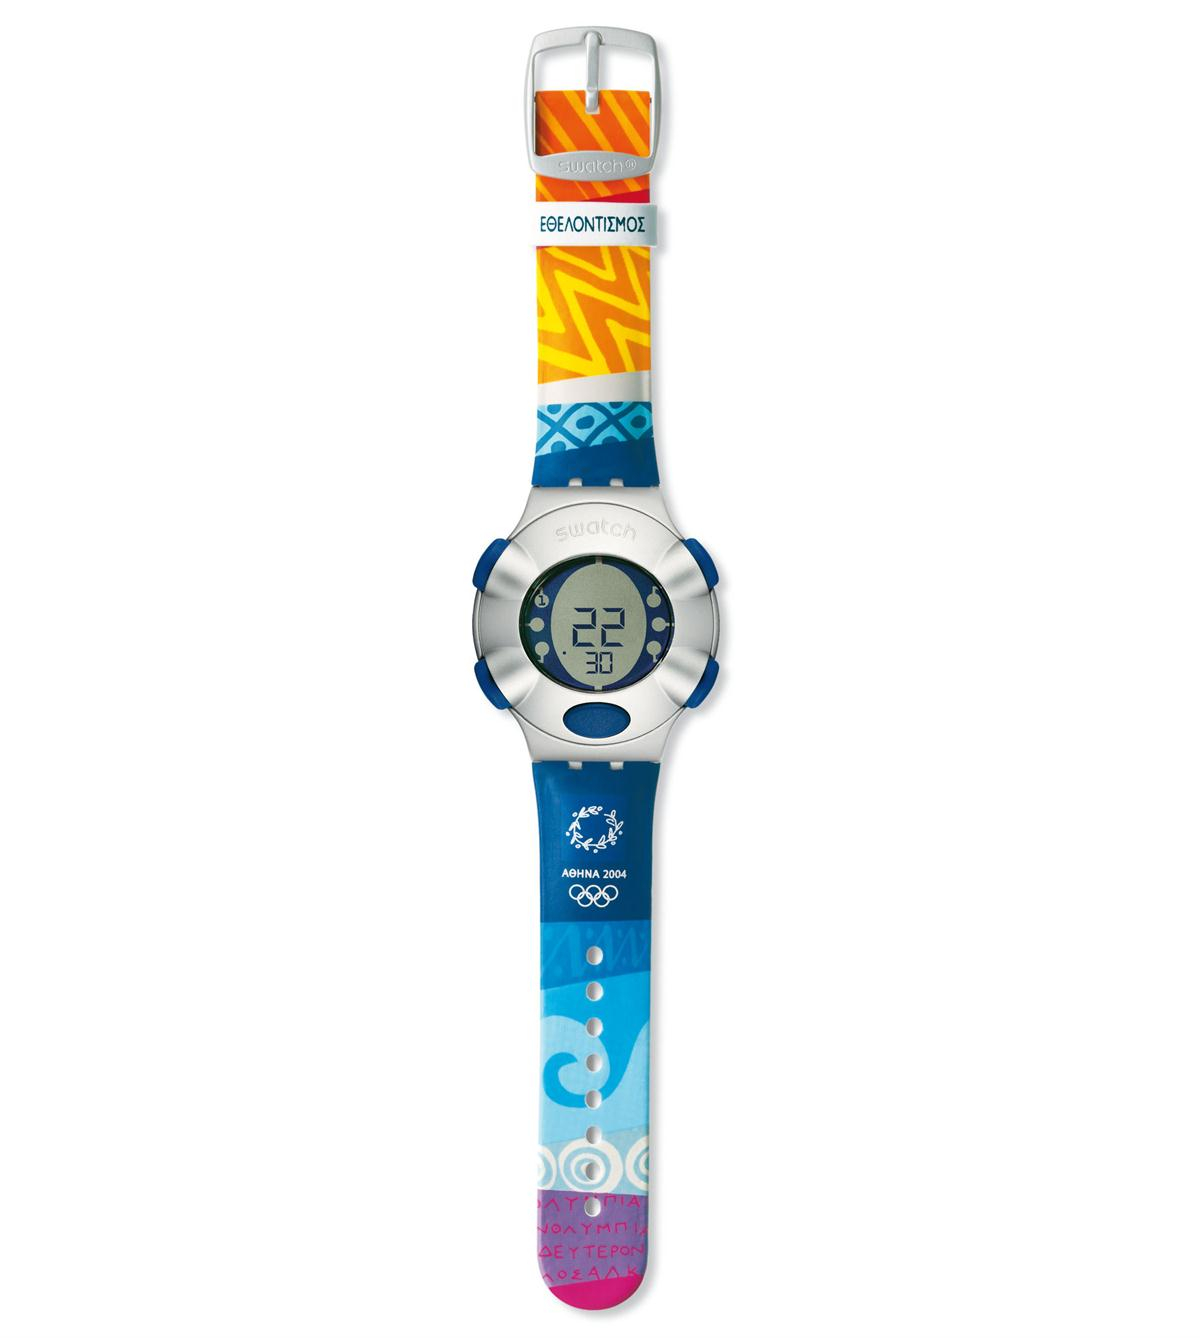 OLYMPIC VOLUNTEER WATCH - YQS1000D